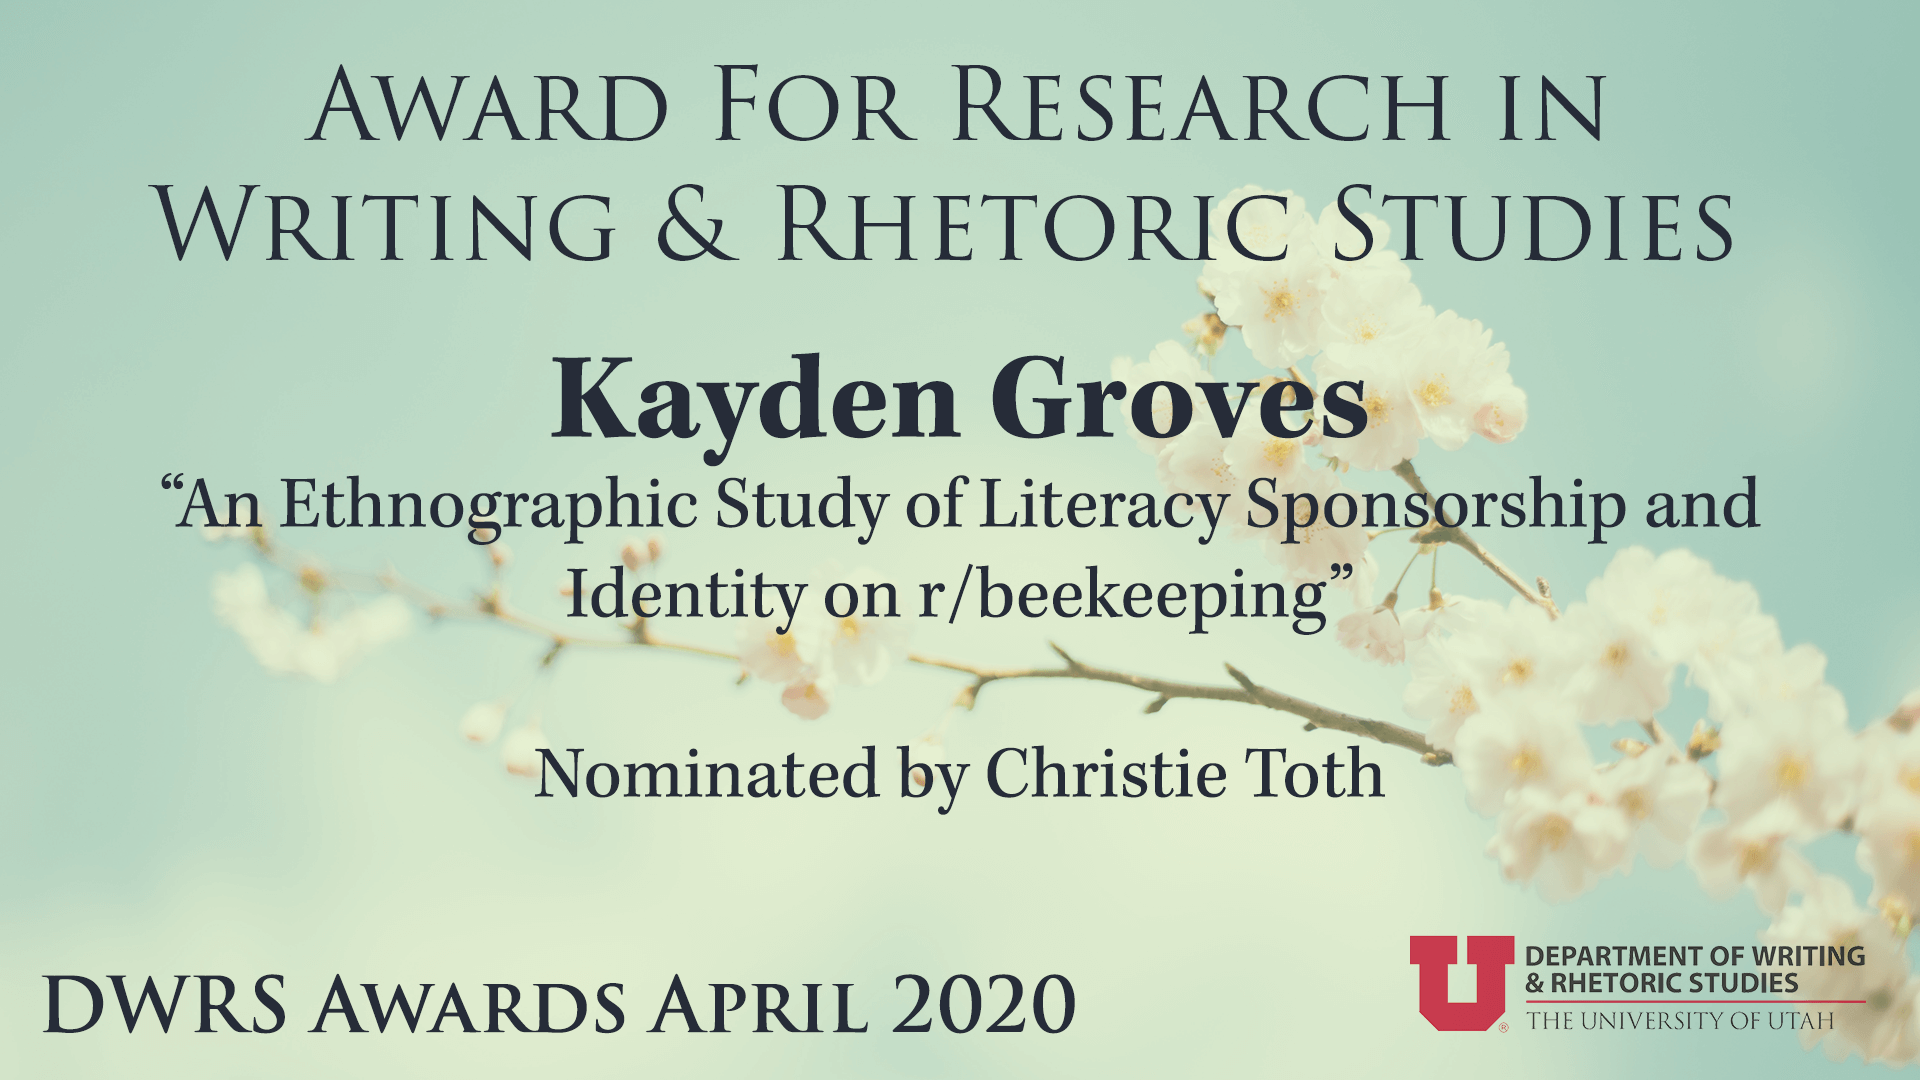 Award for Research in Writing & Rhetoric Studies — Kayden Groves